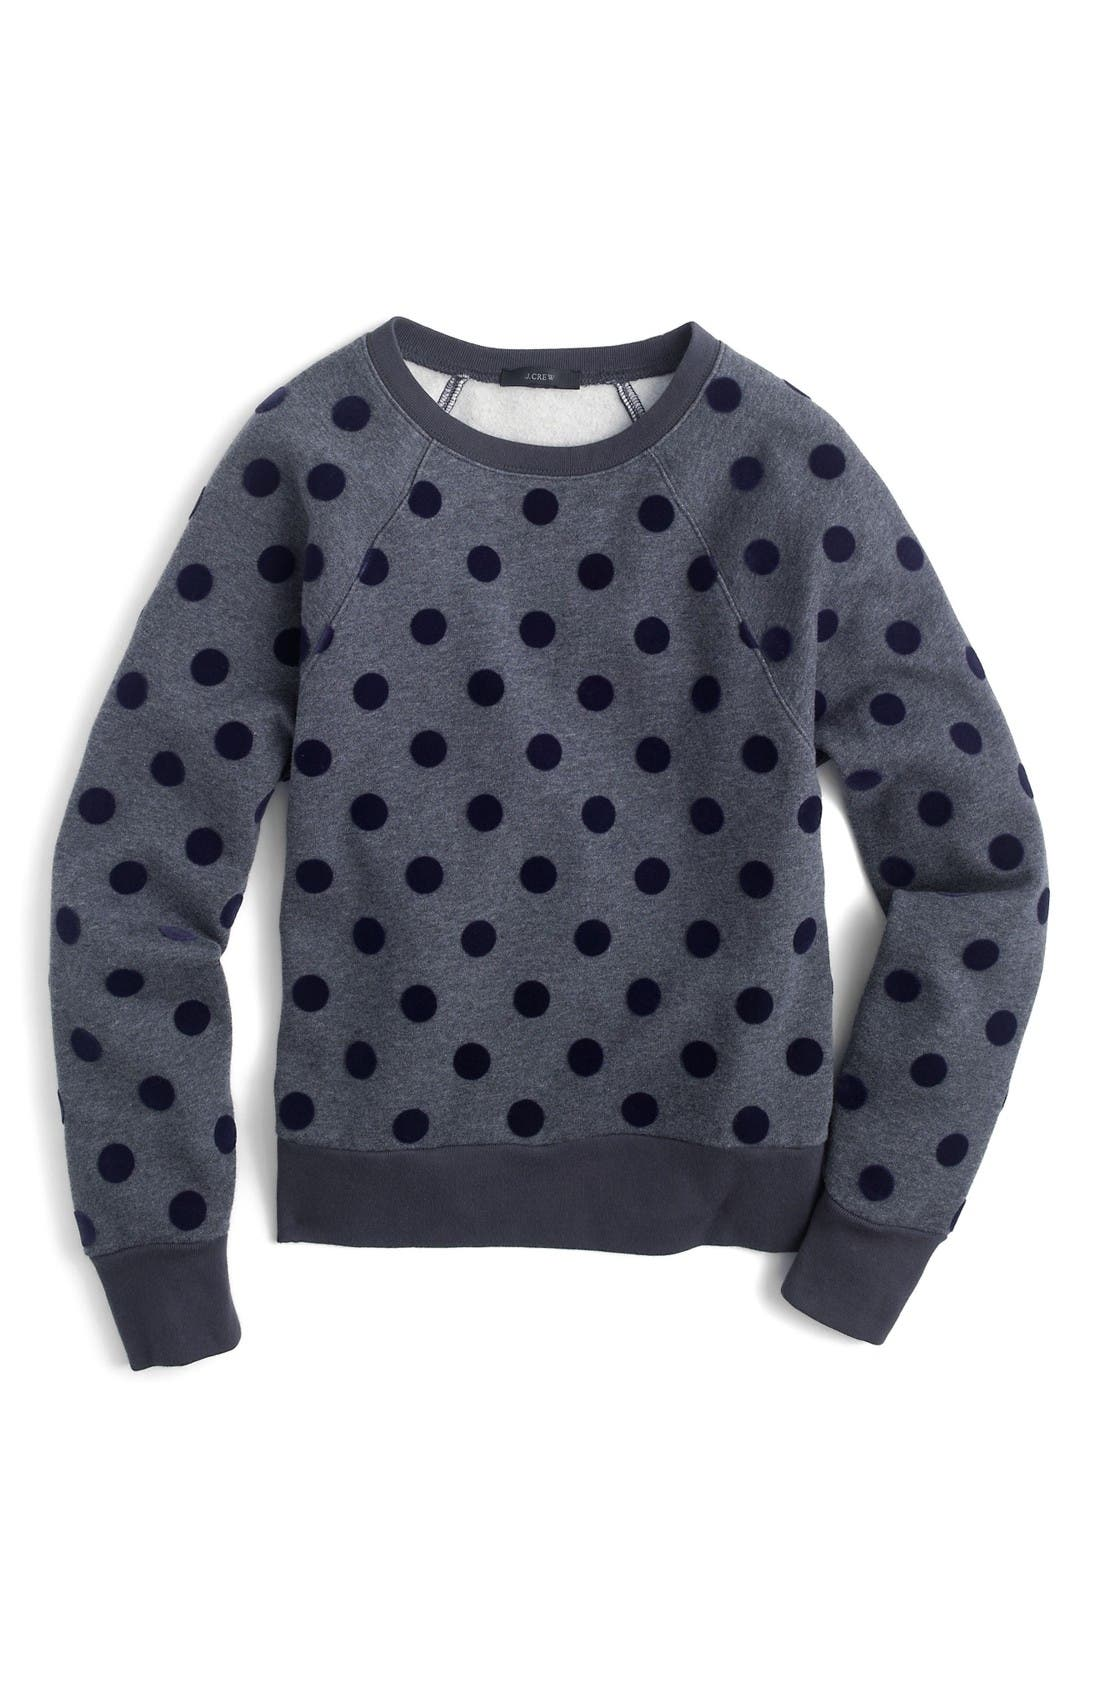 Alternate Image 3  - J.Crew Textured Polka Dot Raglan Sweatshirt